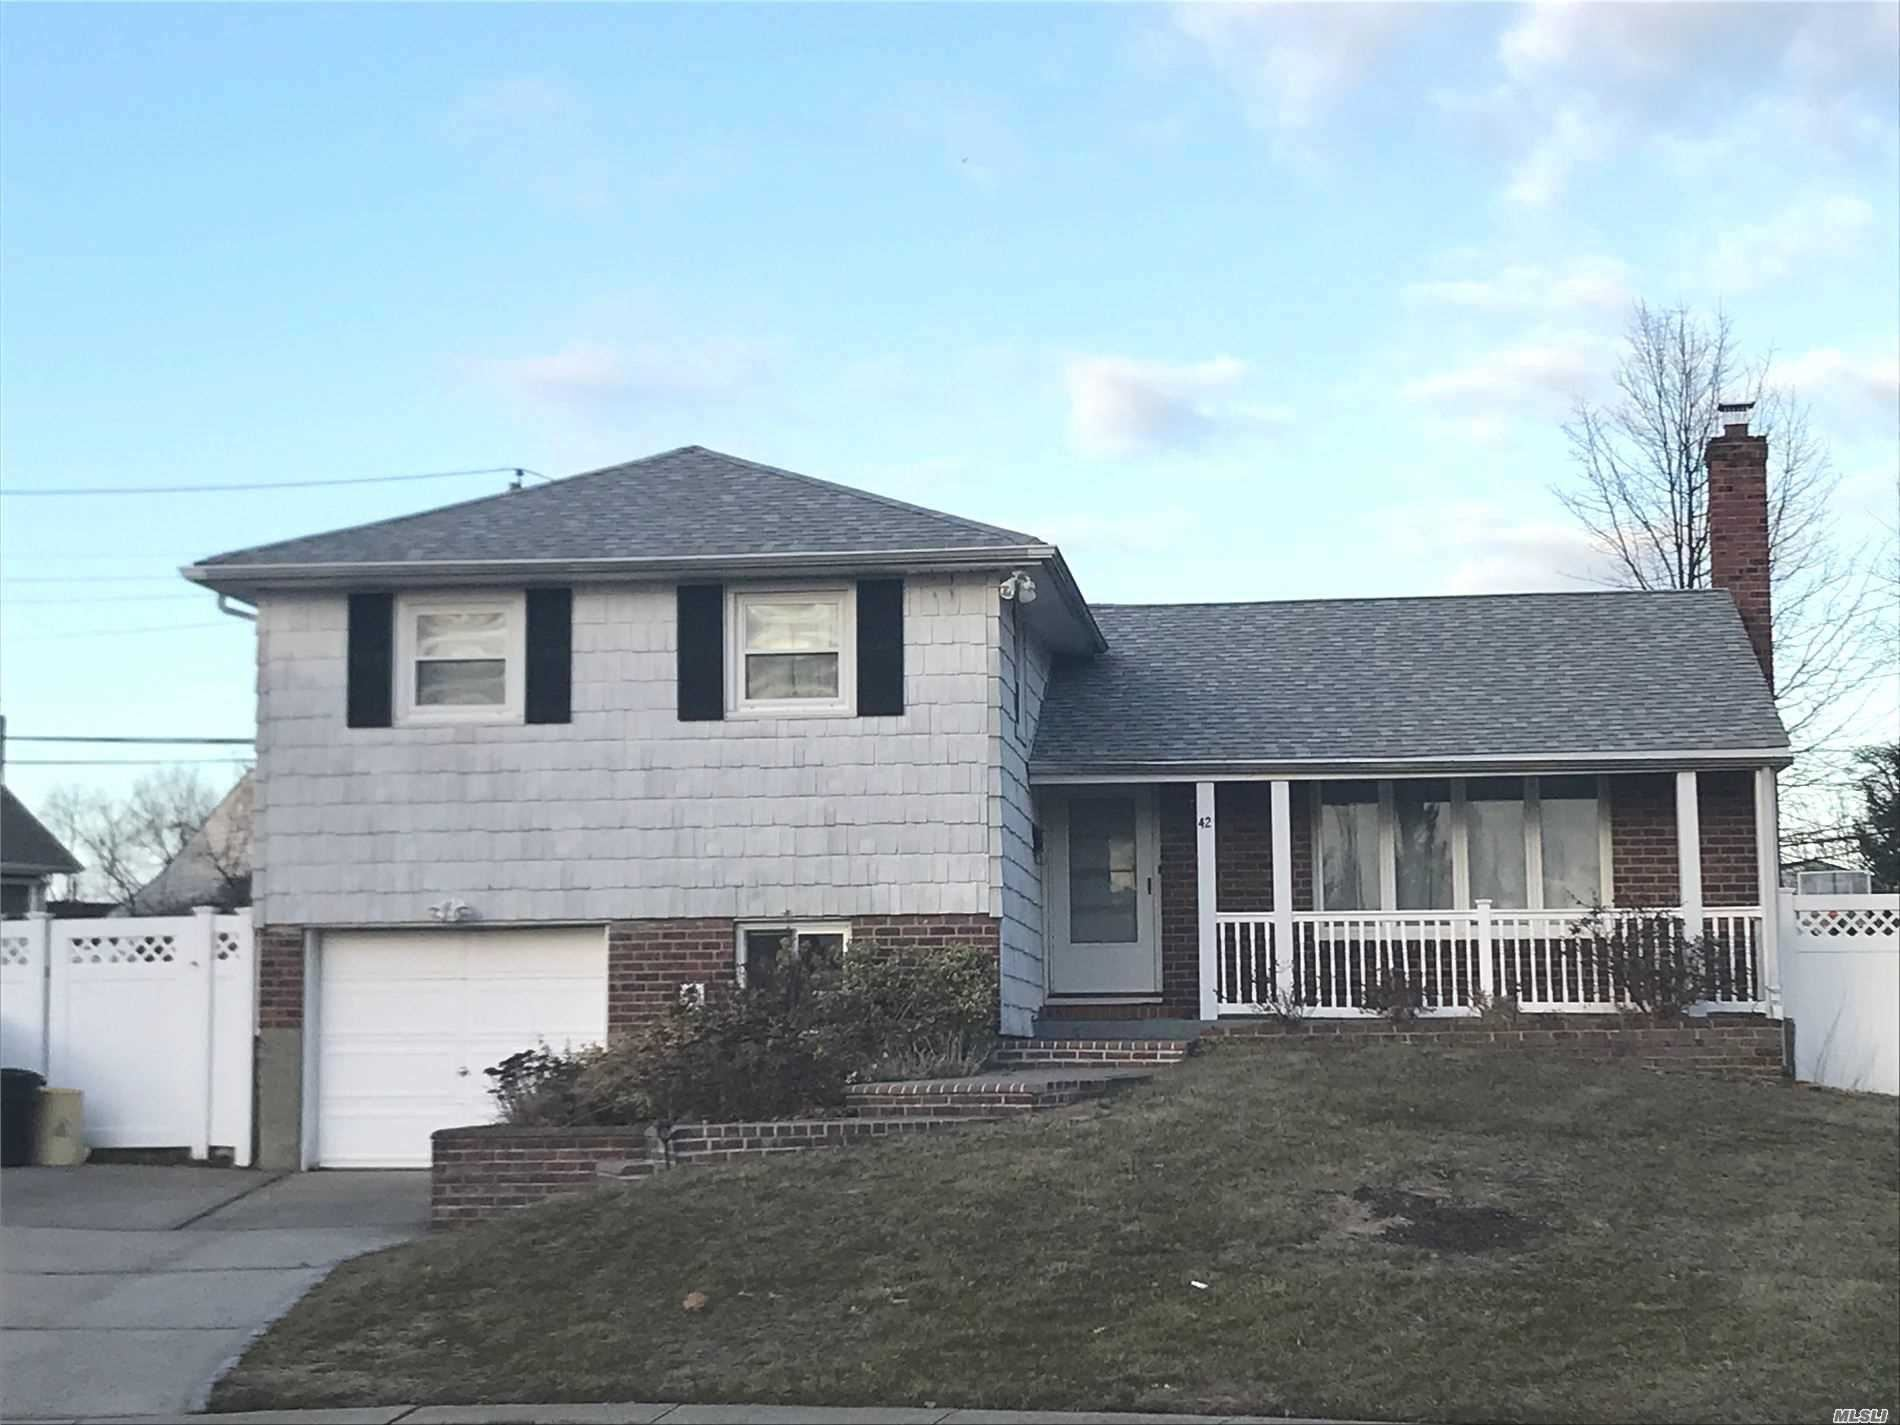 42 Willets Drive, Syosset, NY 11791 - MLS#: 3193644